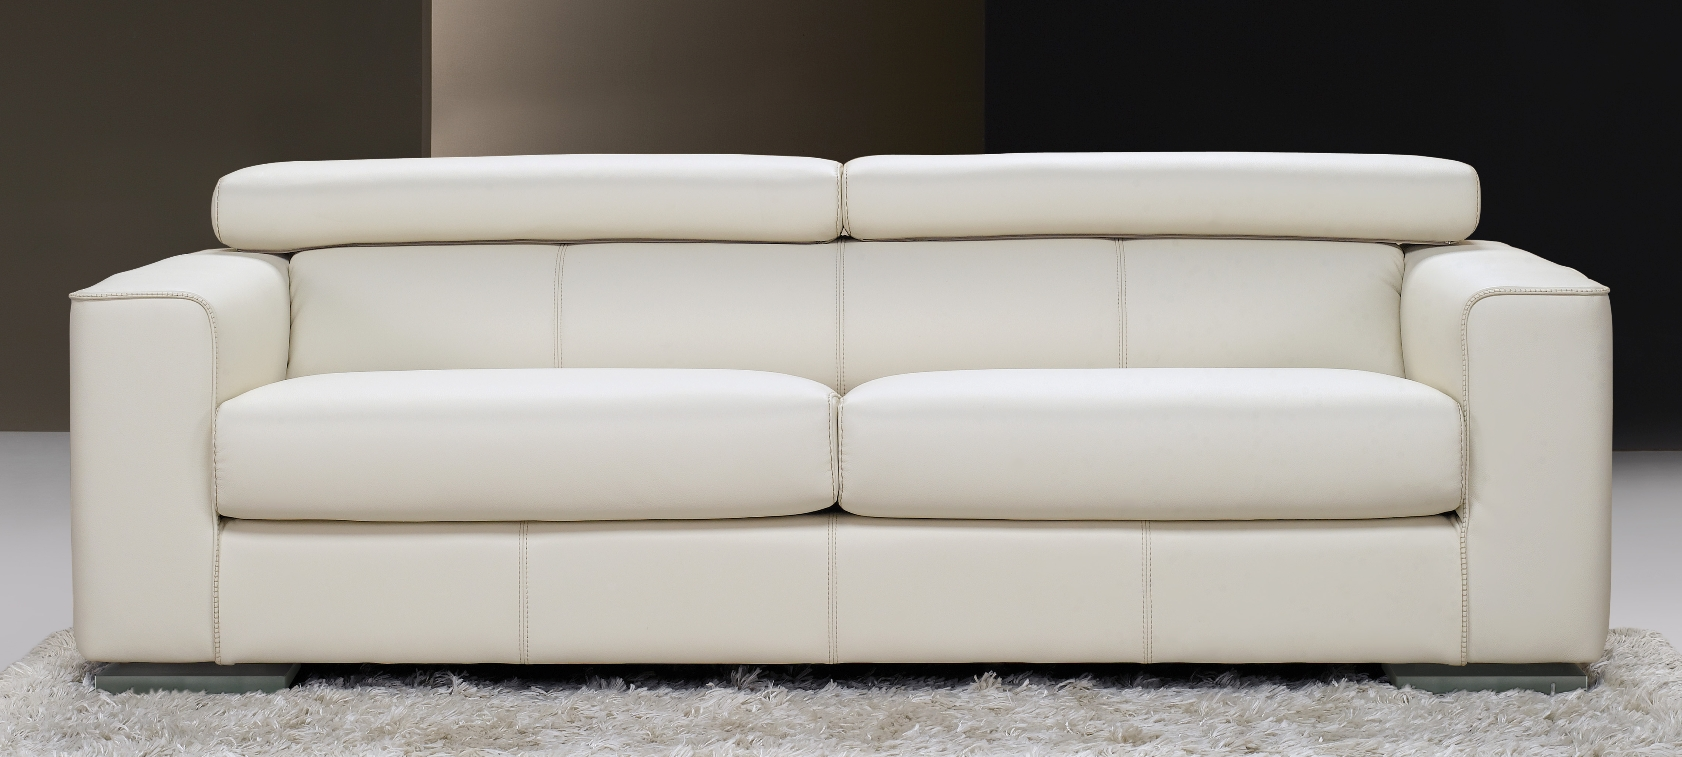 Luxurious leather sofas luxury leather designer furniture taylor lloe thesofa Designer loveseats